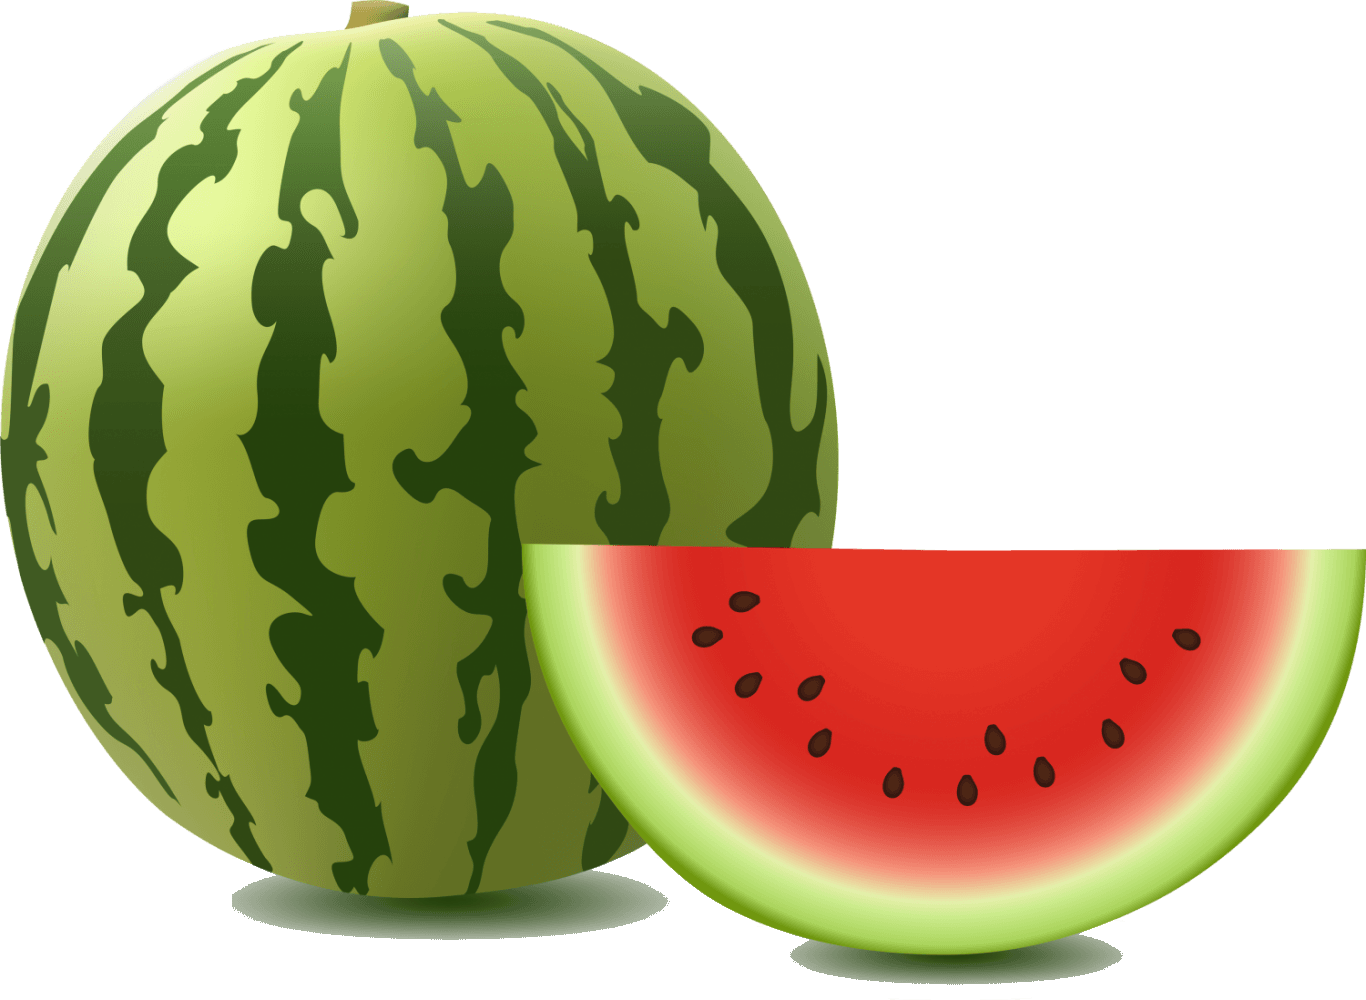 A large watermelon